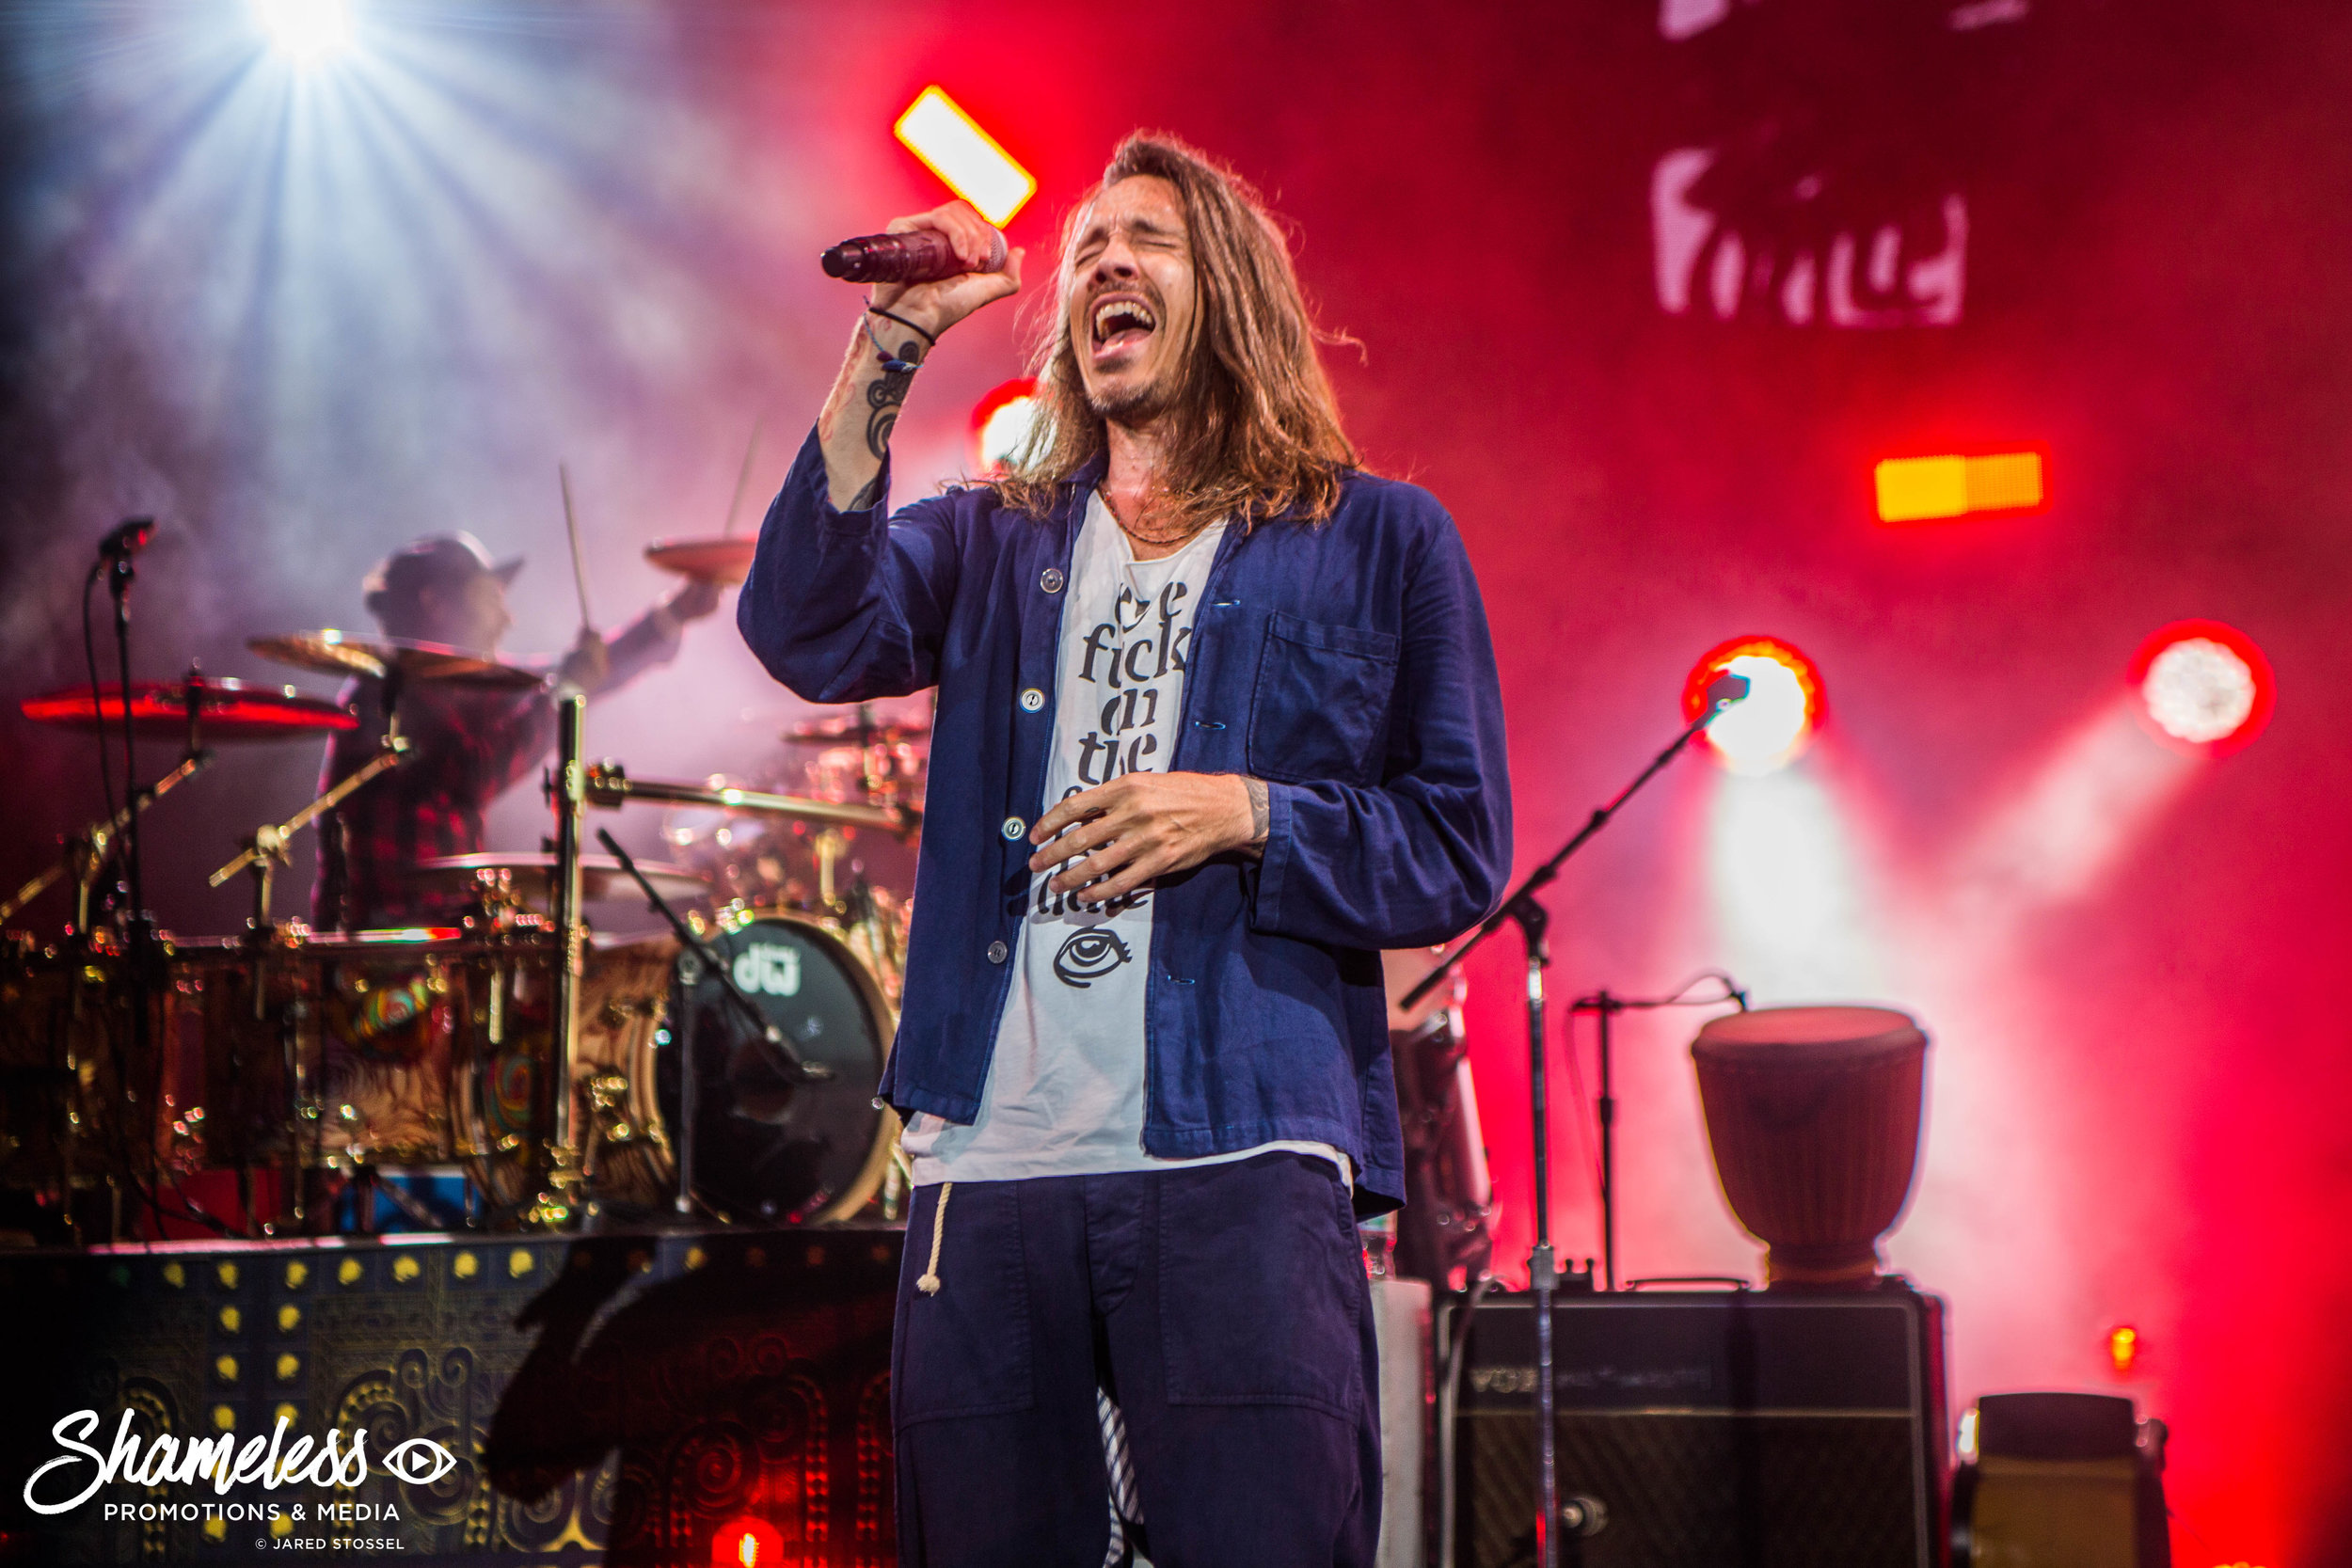 Brandon Boyd of Incubus performing at Shoreline Amphitheater in Mountain View, CA. August 16, 2017. Photo: Jared Stossel